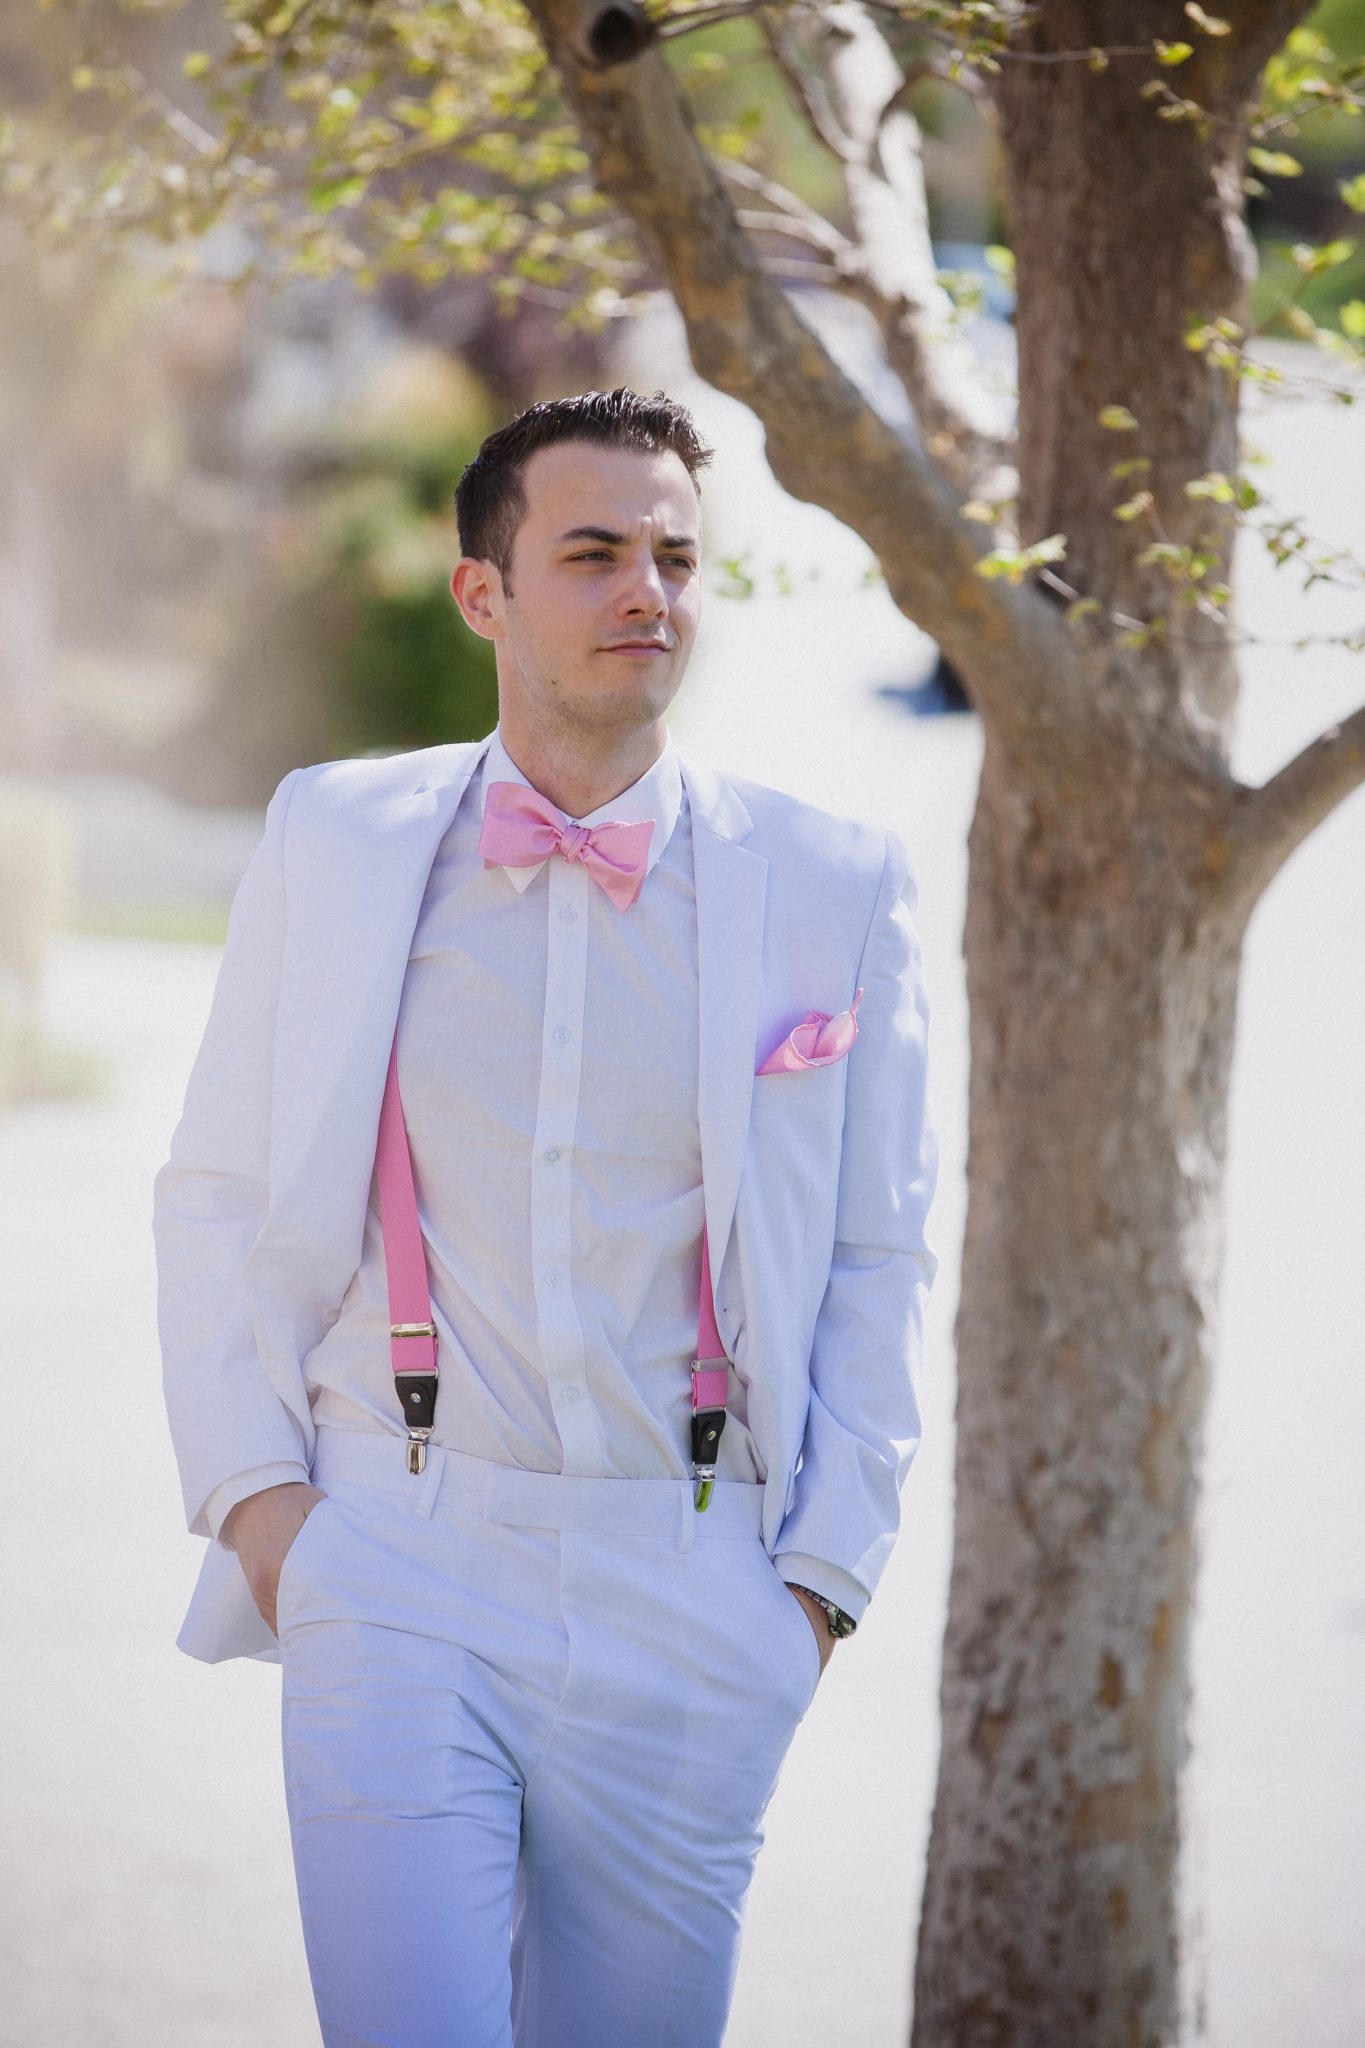 Groom wearing a white tux with a pink bow tie